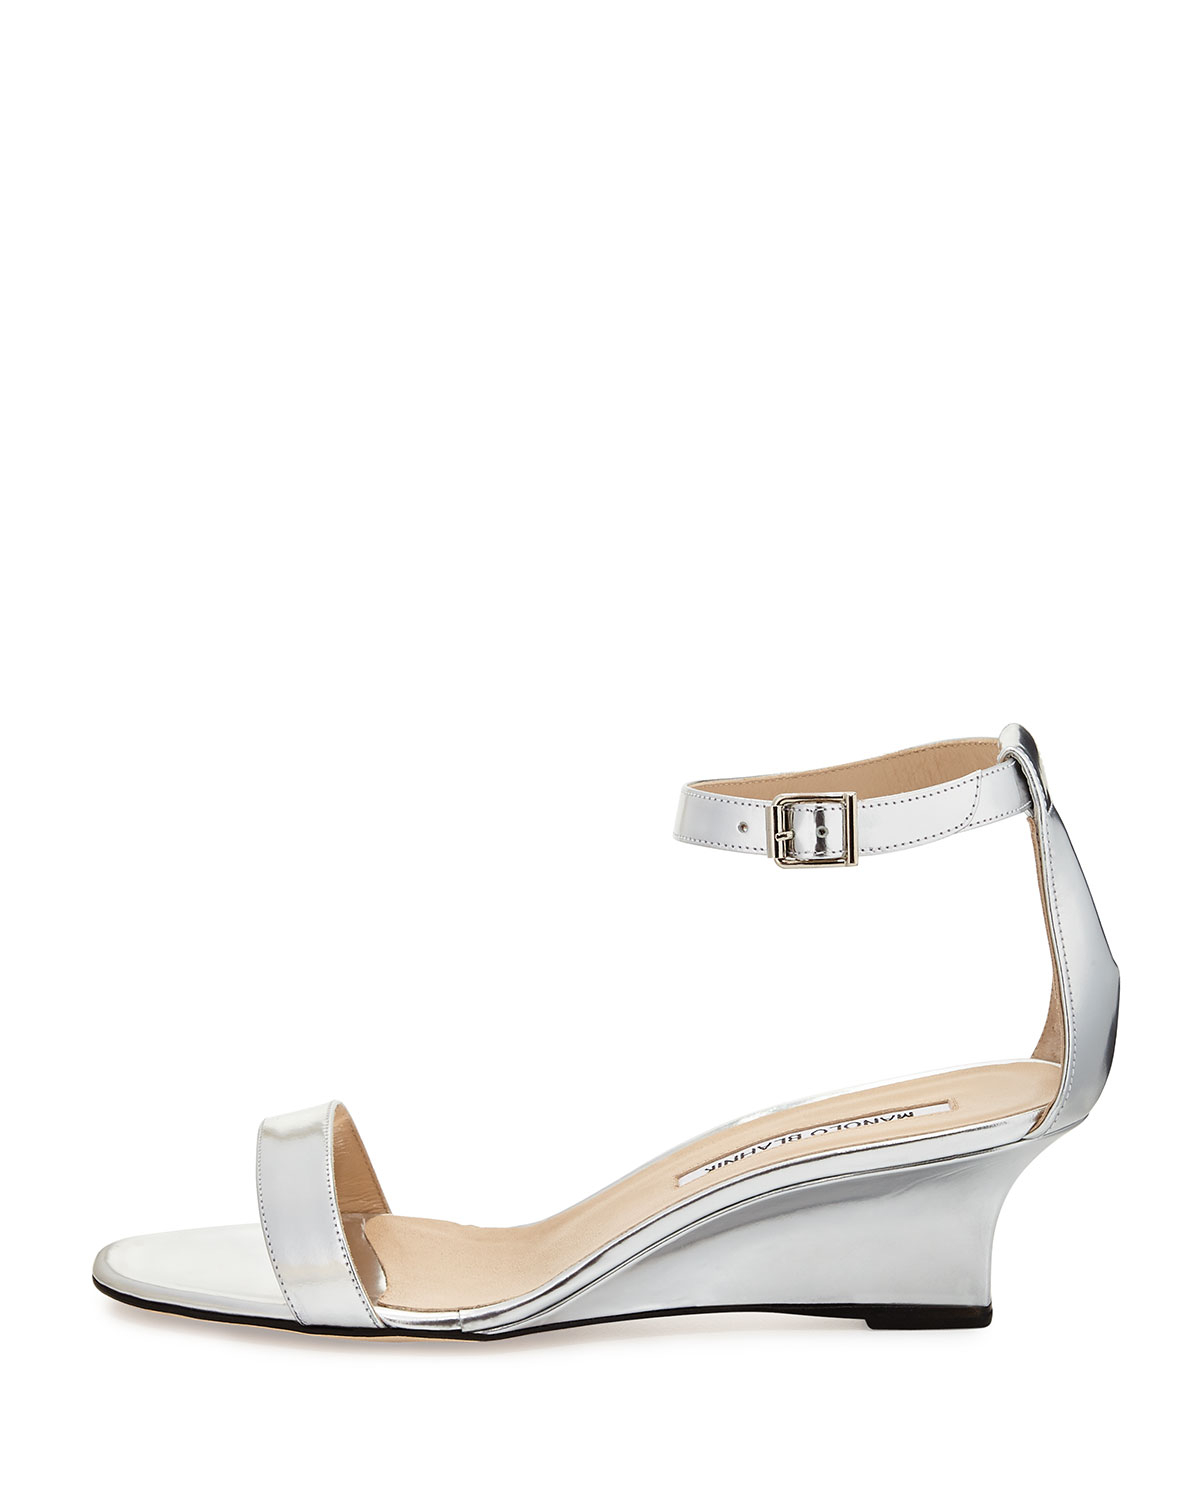 9156f1bdbe62 Lyst - Manolo Blahnik Valere Metallic Demi-Wedge Sandal in Metallic